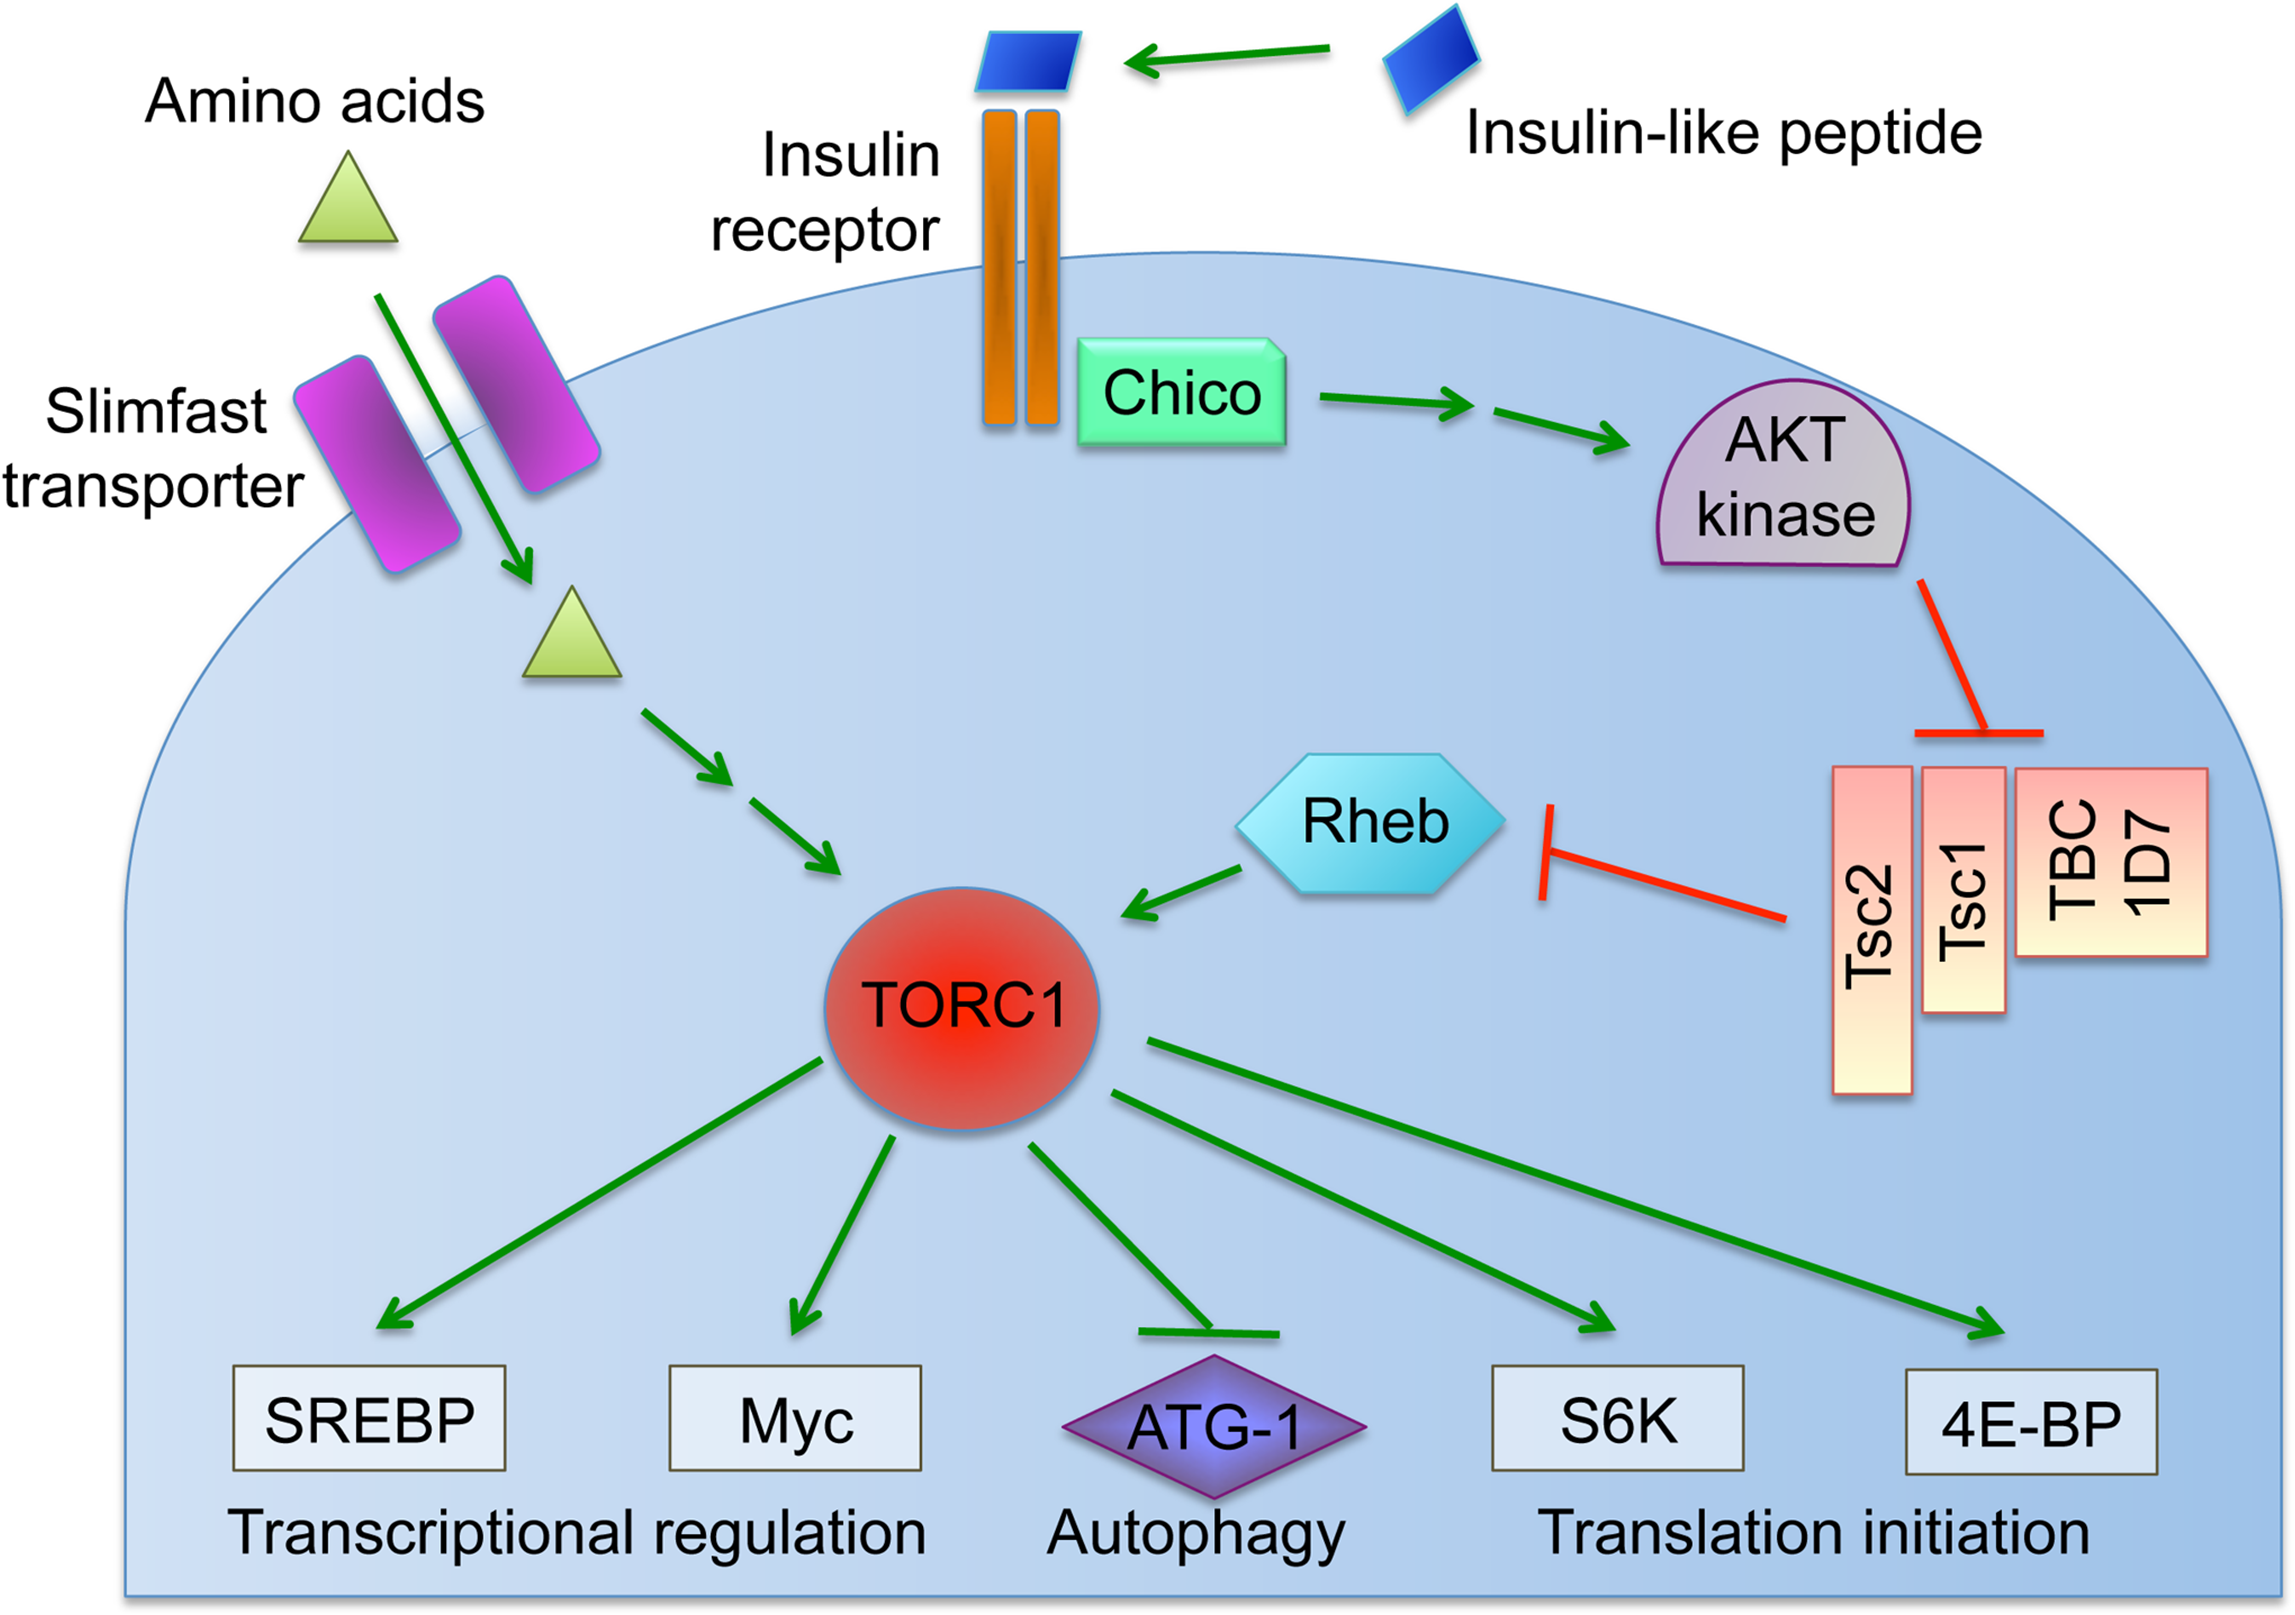 Overview of the nutrient-induced TORC1 signaling pathway.